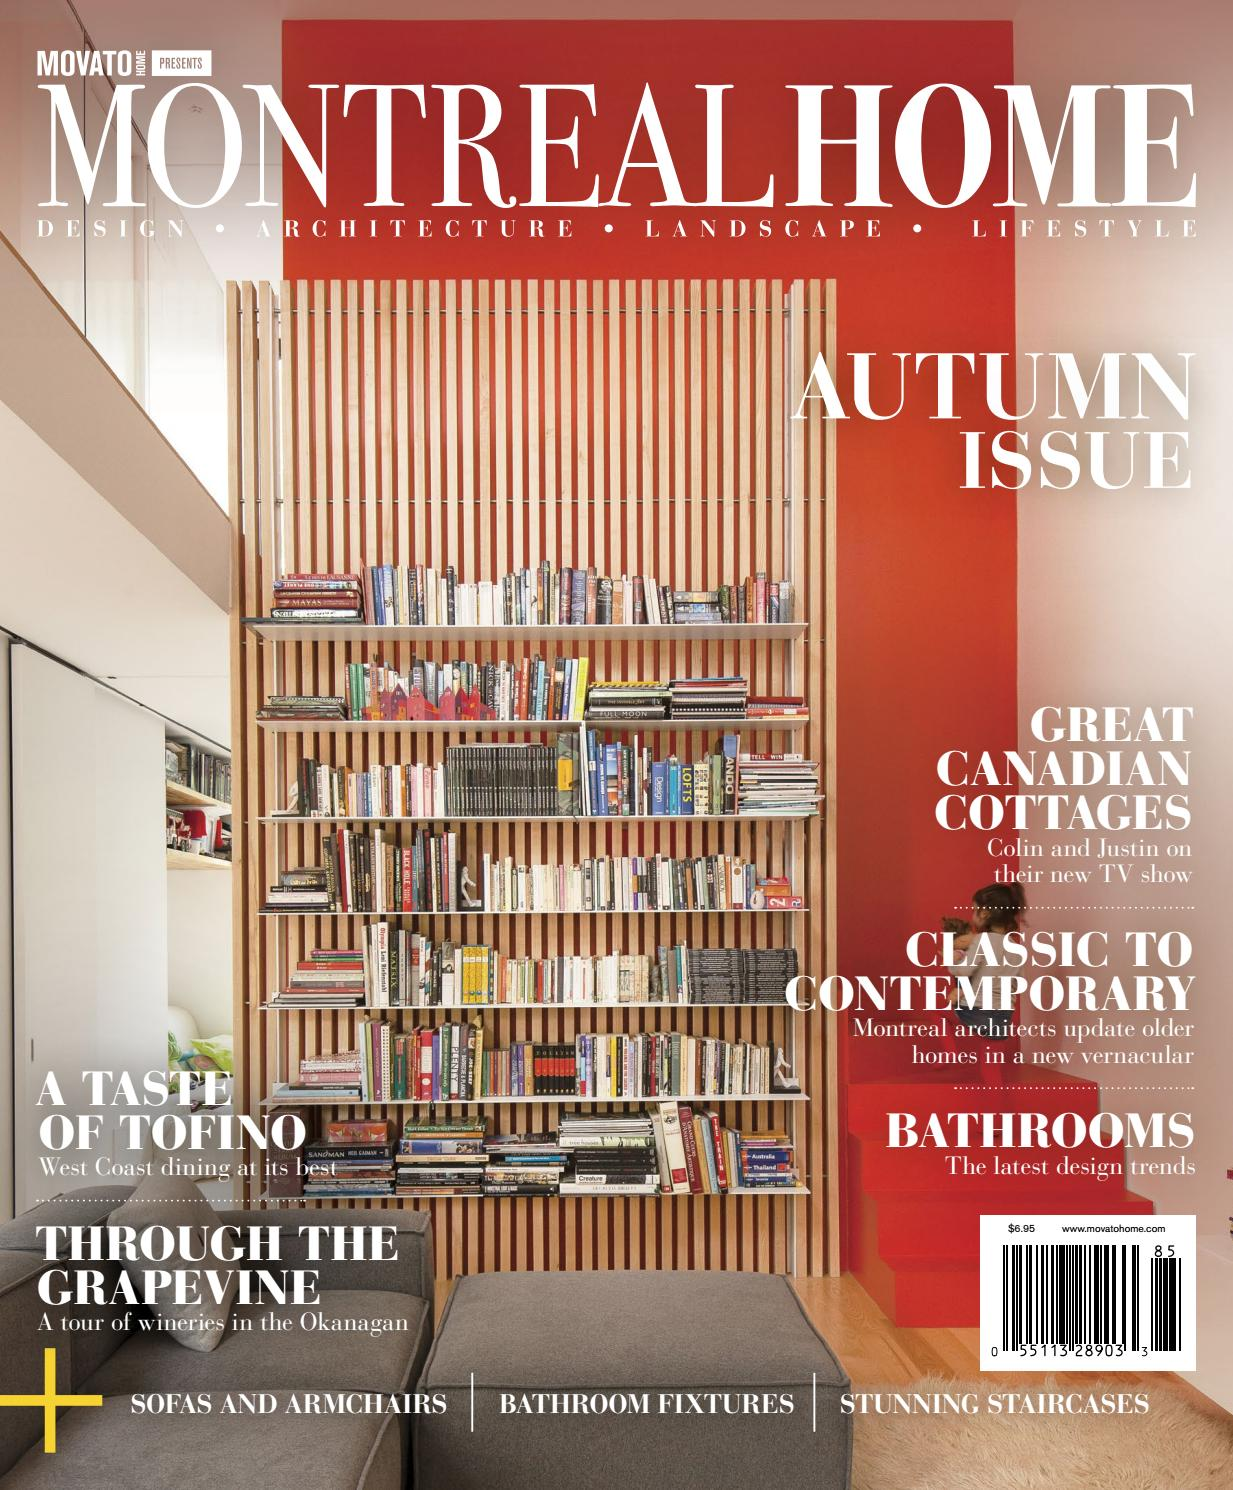 Montreal Home Autumn 2018 By Home In Canada Design Architecture Landscape Lifestyle Issuu